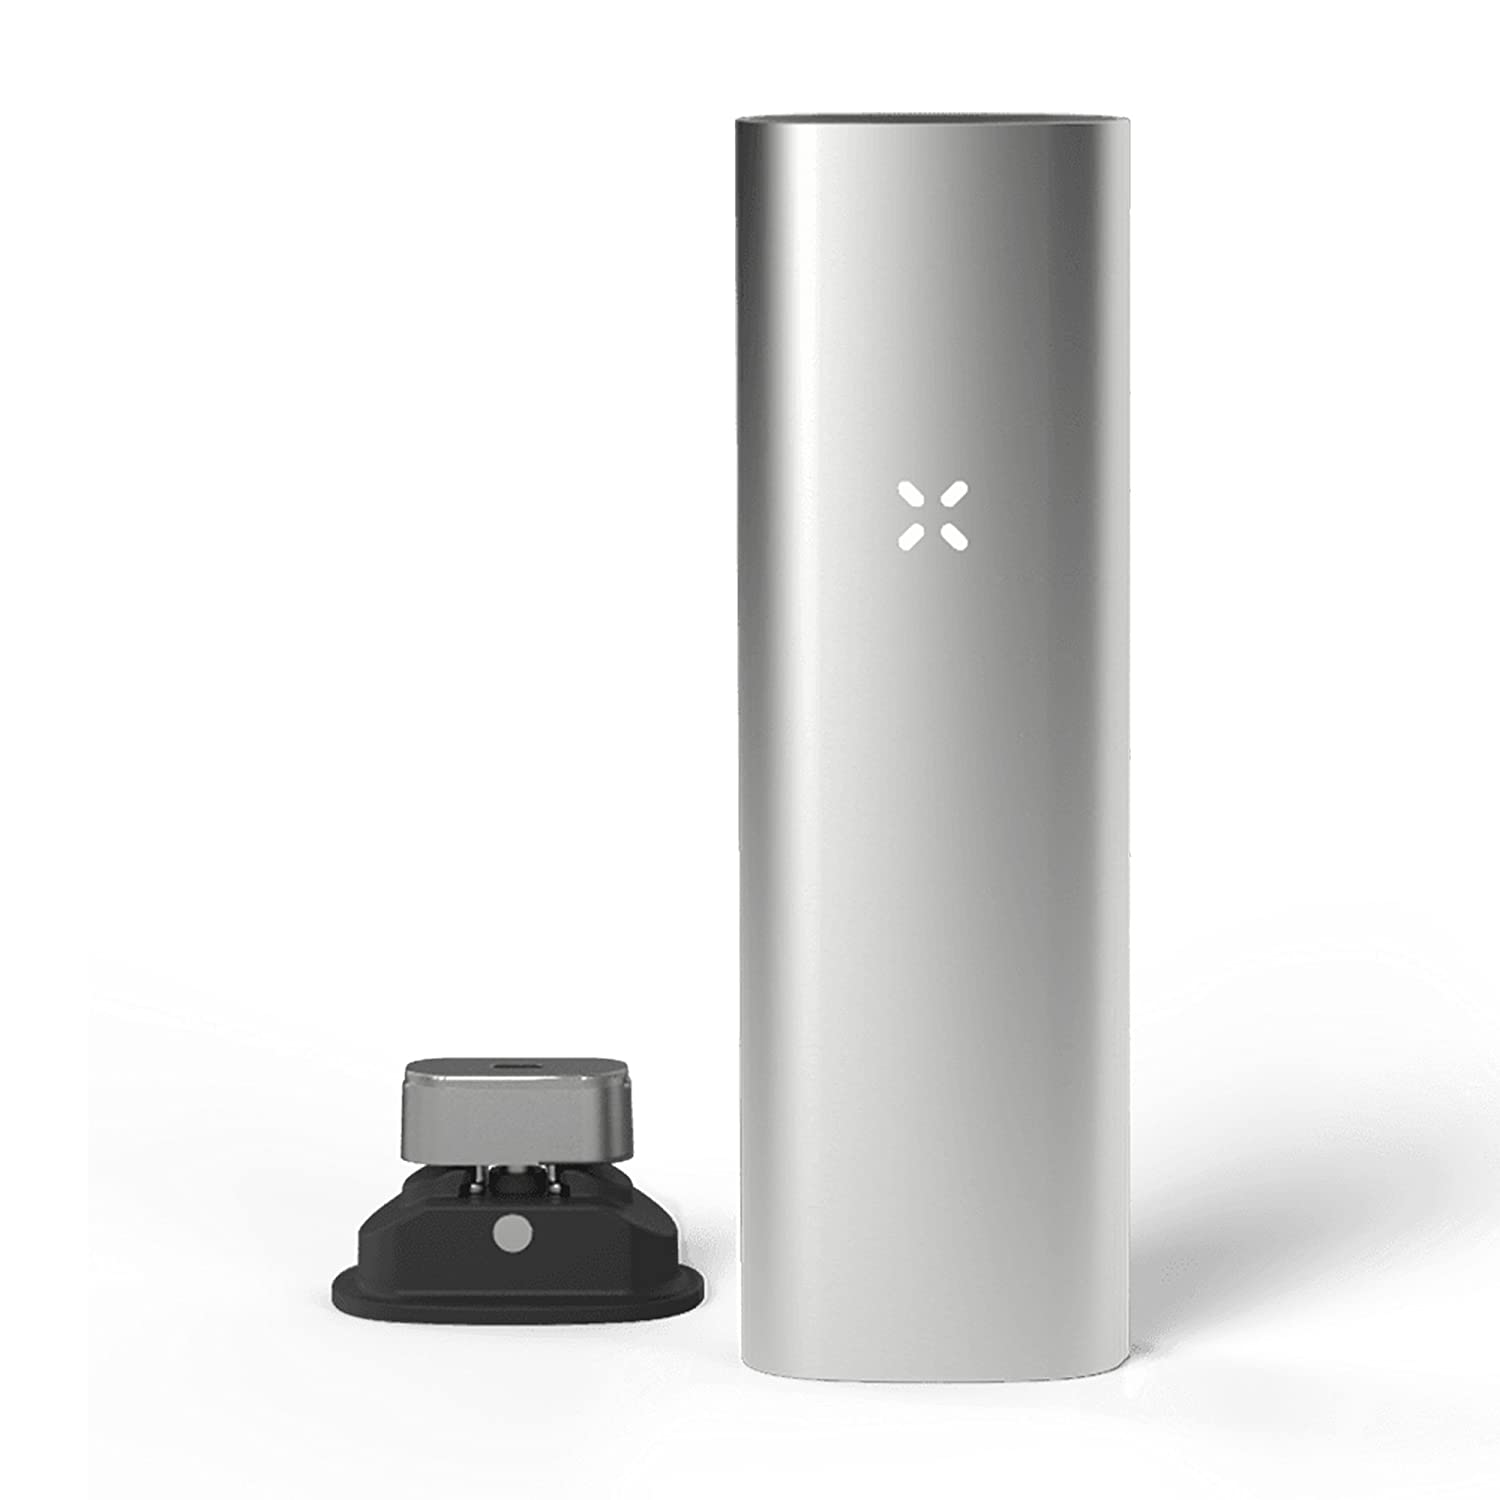 Pax | PAX 3 - Premium Portable Vaporizer - Dry Herb Oil Wax Vape Pen - 10  Year Warranty - New Colour - Complete Kit - Matte Silver